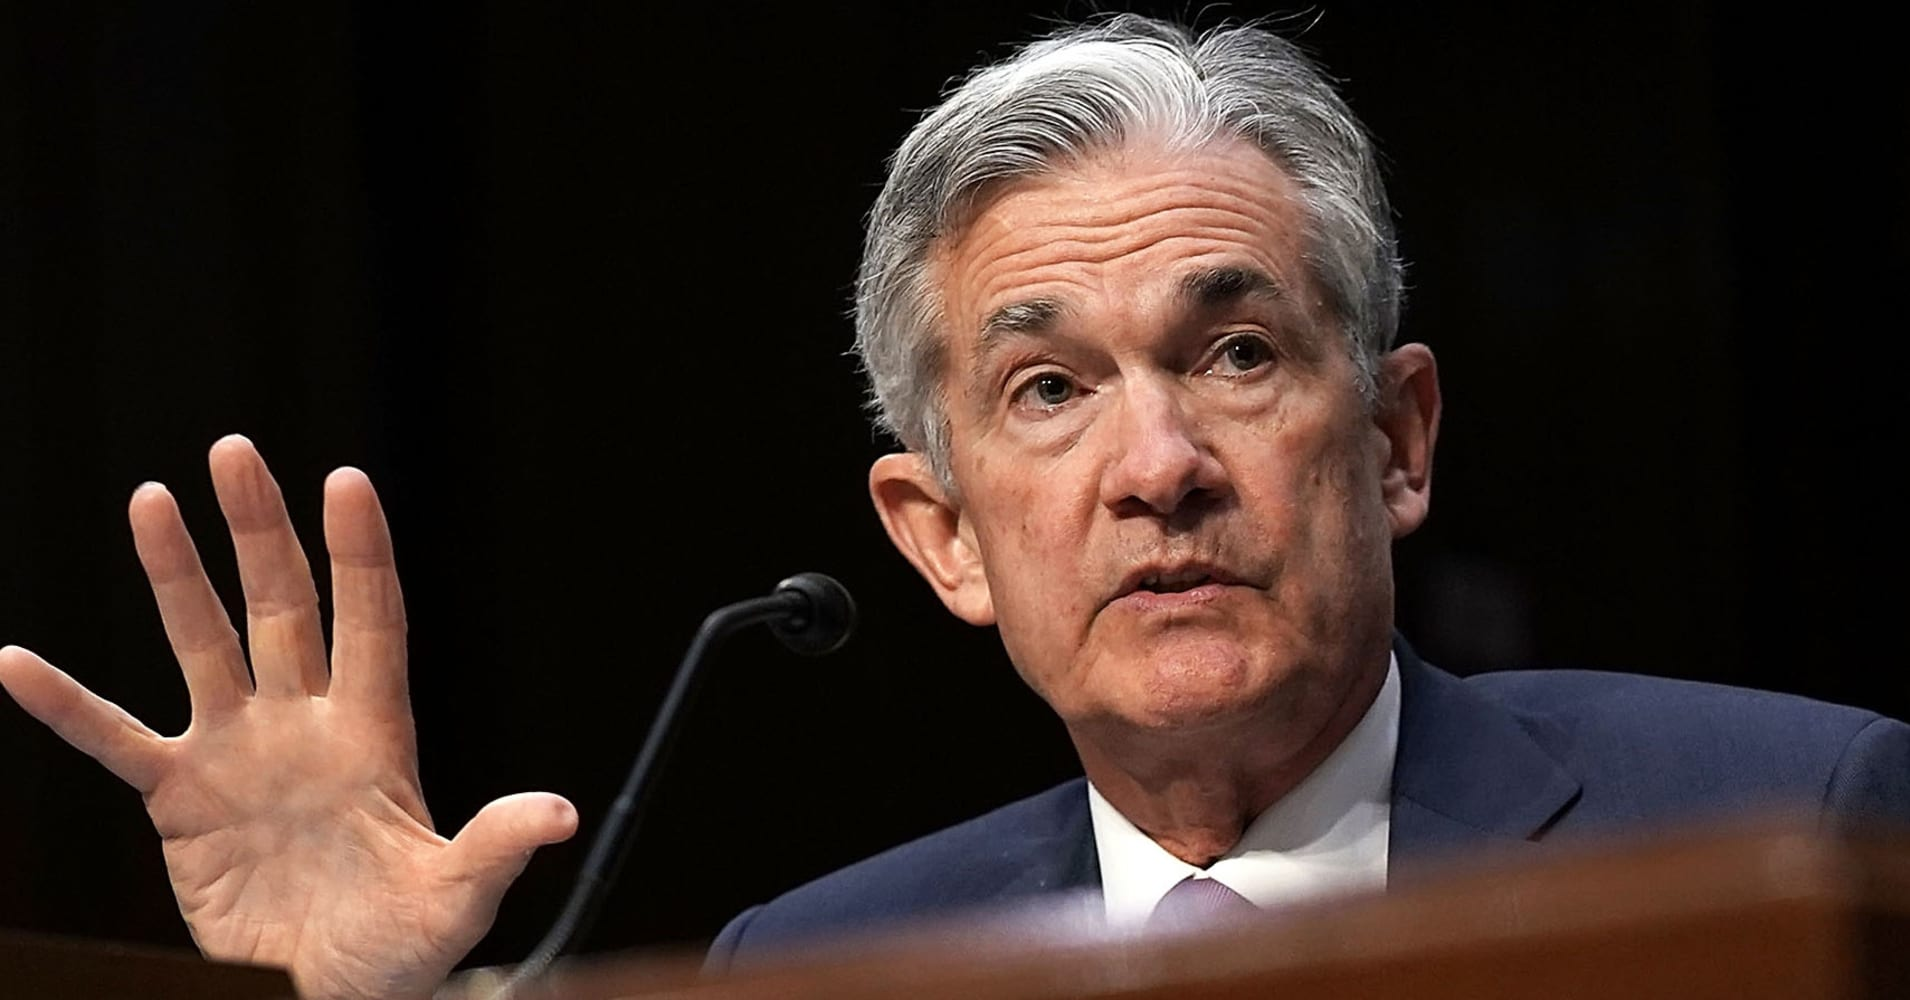 Fed's Powell still has a chance to save the economy before it's too late, Cramer says